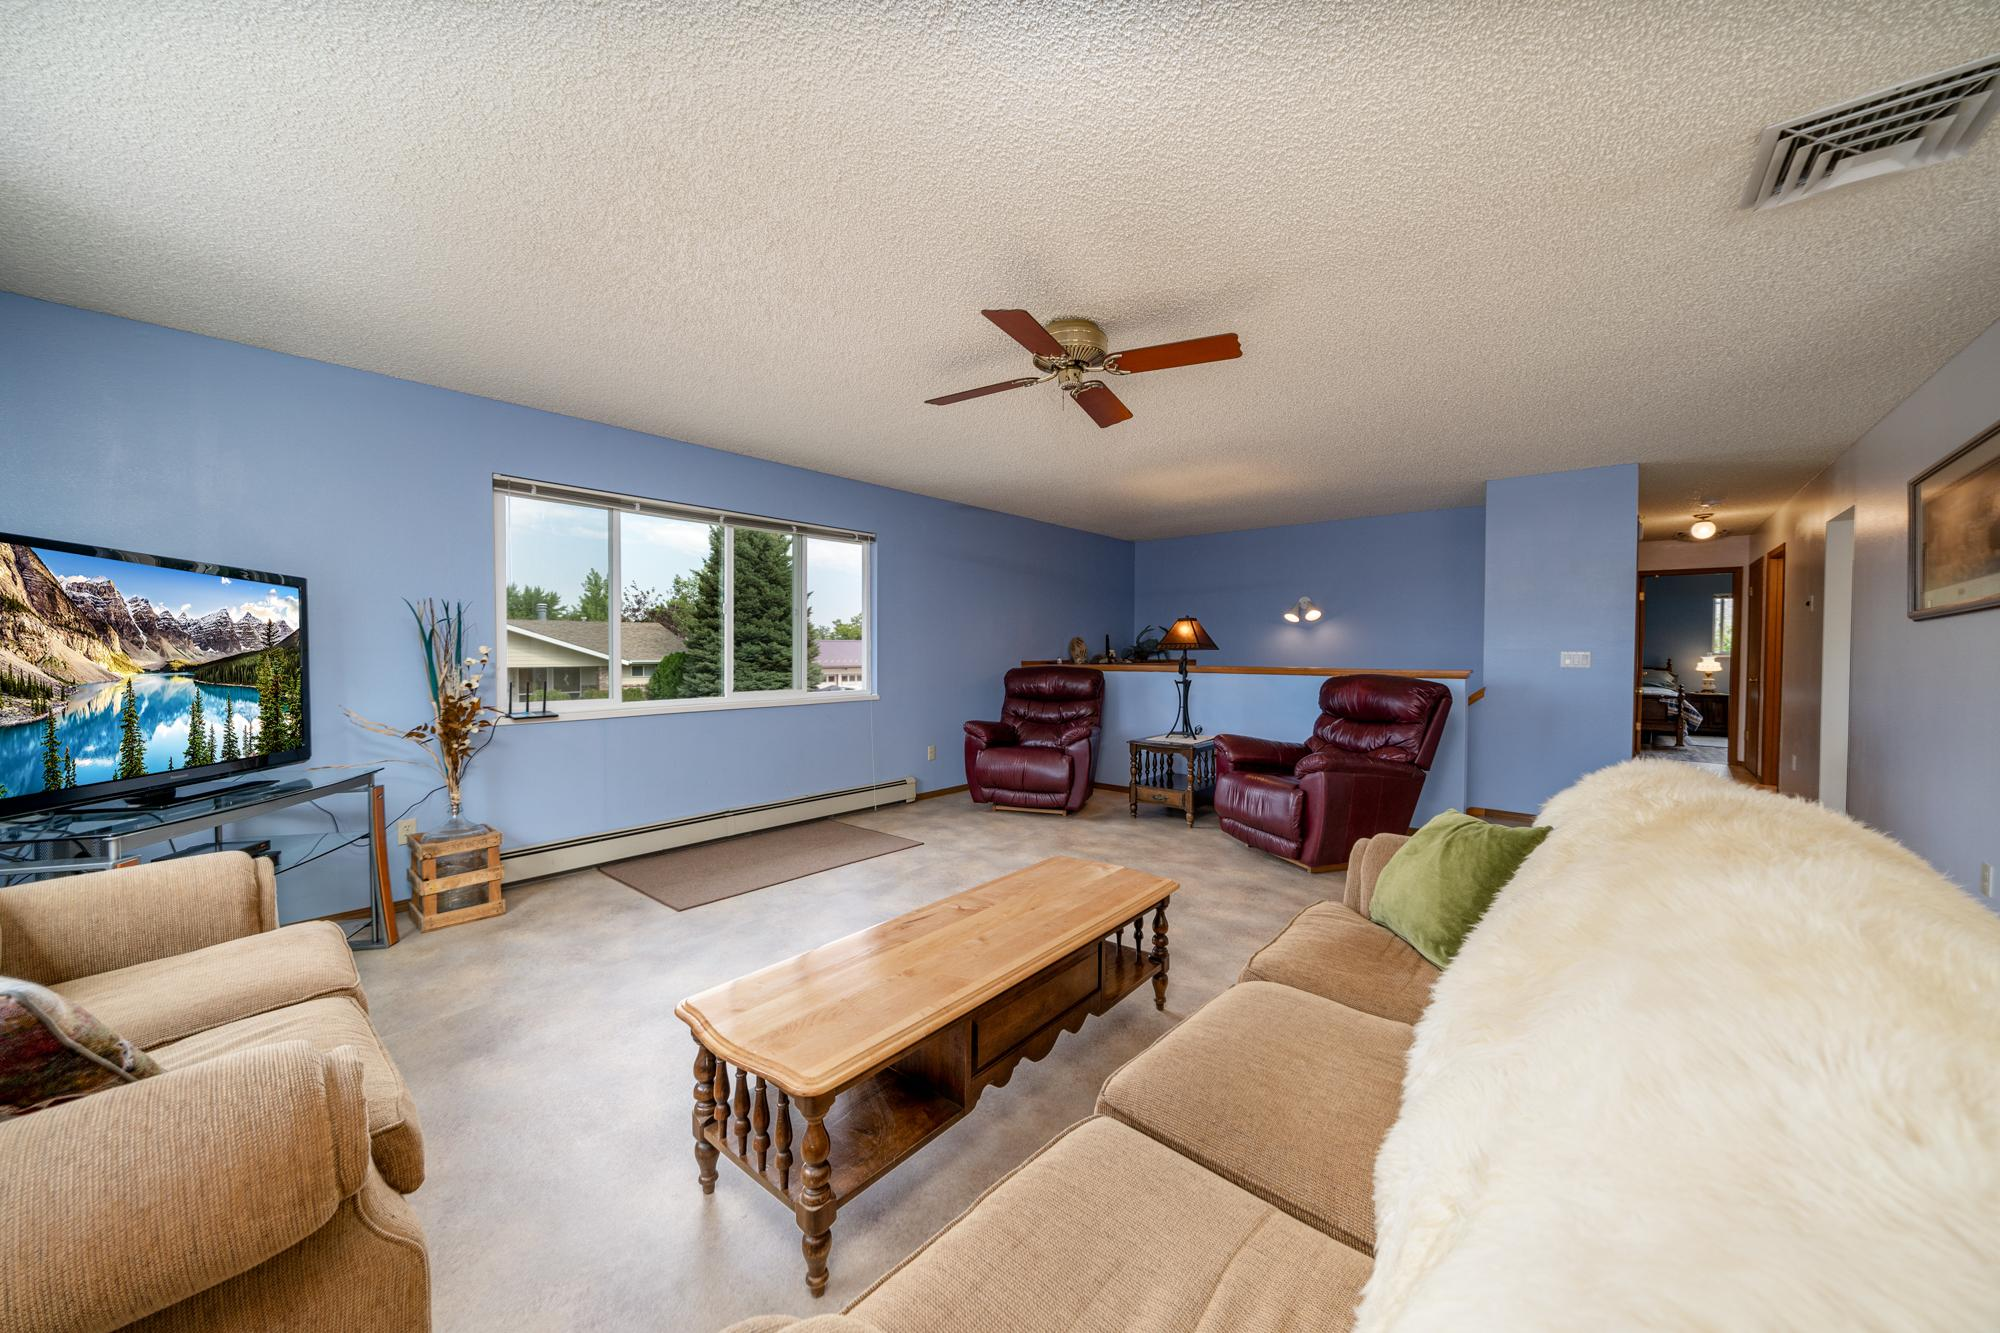 Living Room with Ceiling Fan - 1311 Manchester Dr Montrose, CO 81401 - Atha Team Realty Agents